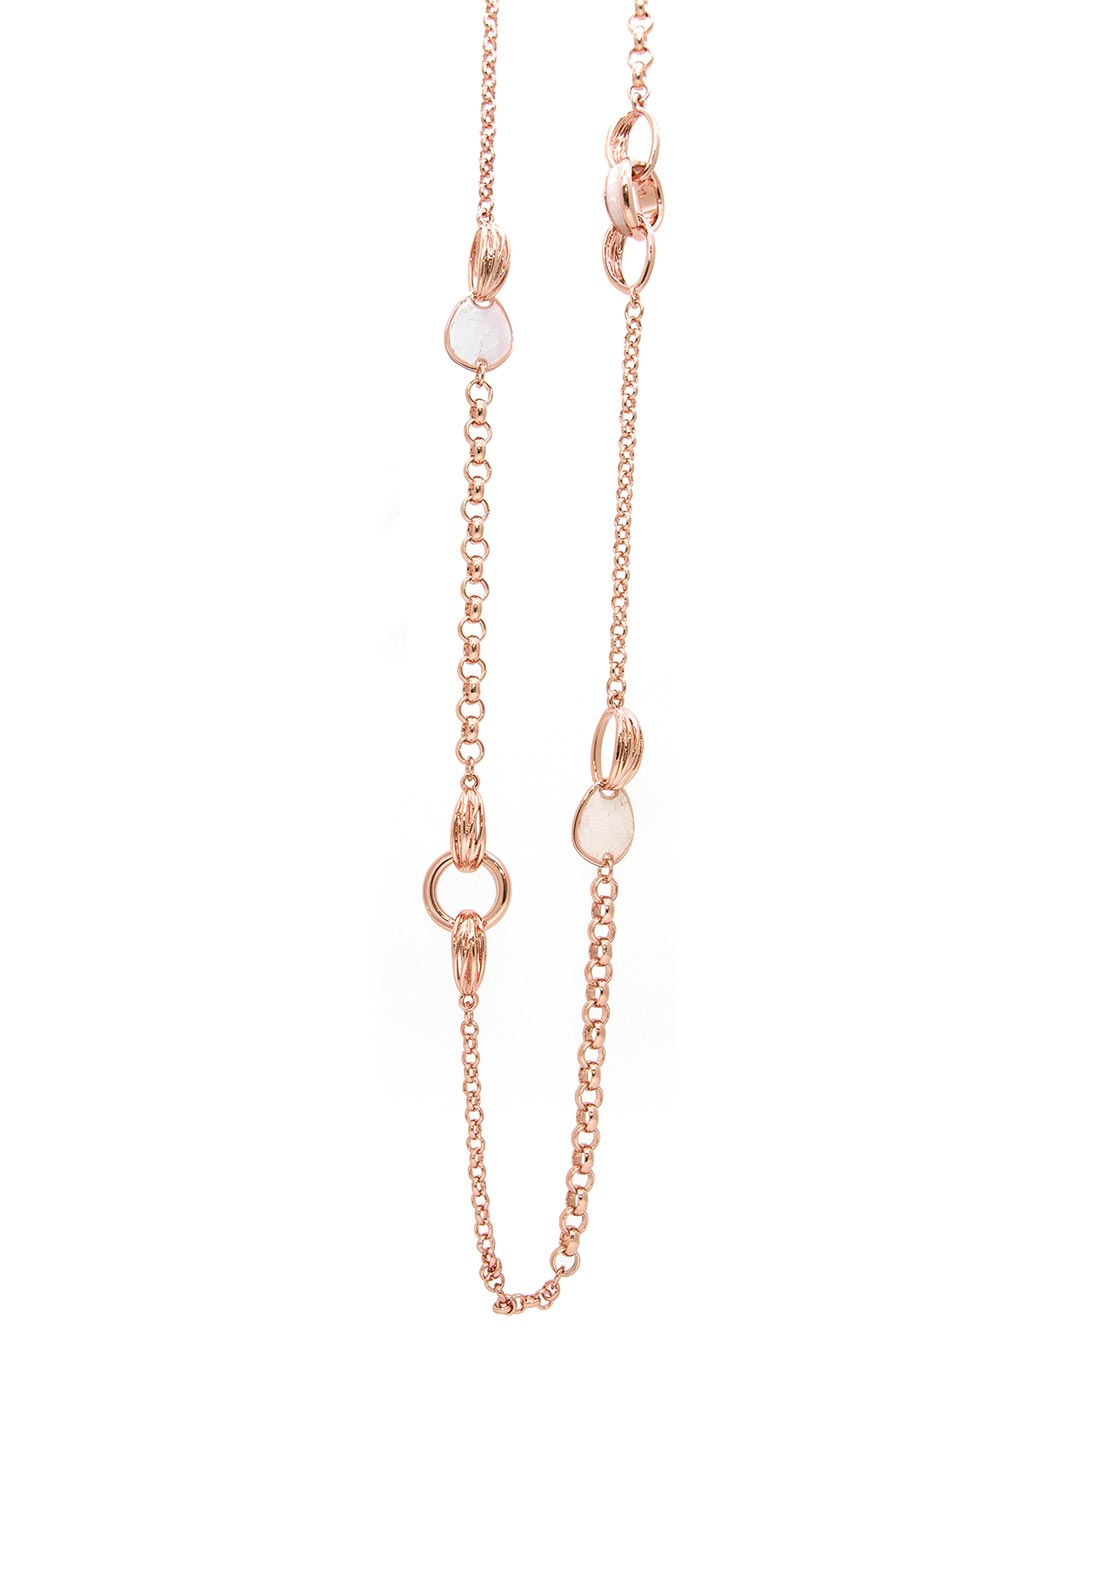 Absolute Long Embellished Chain, Rose Gold